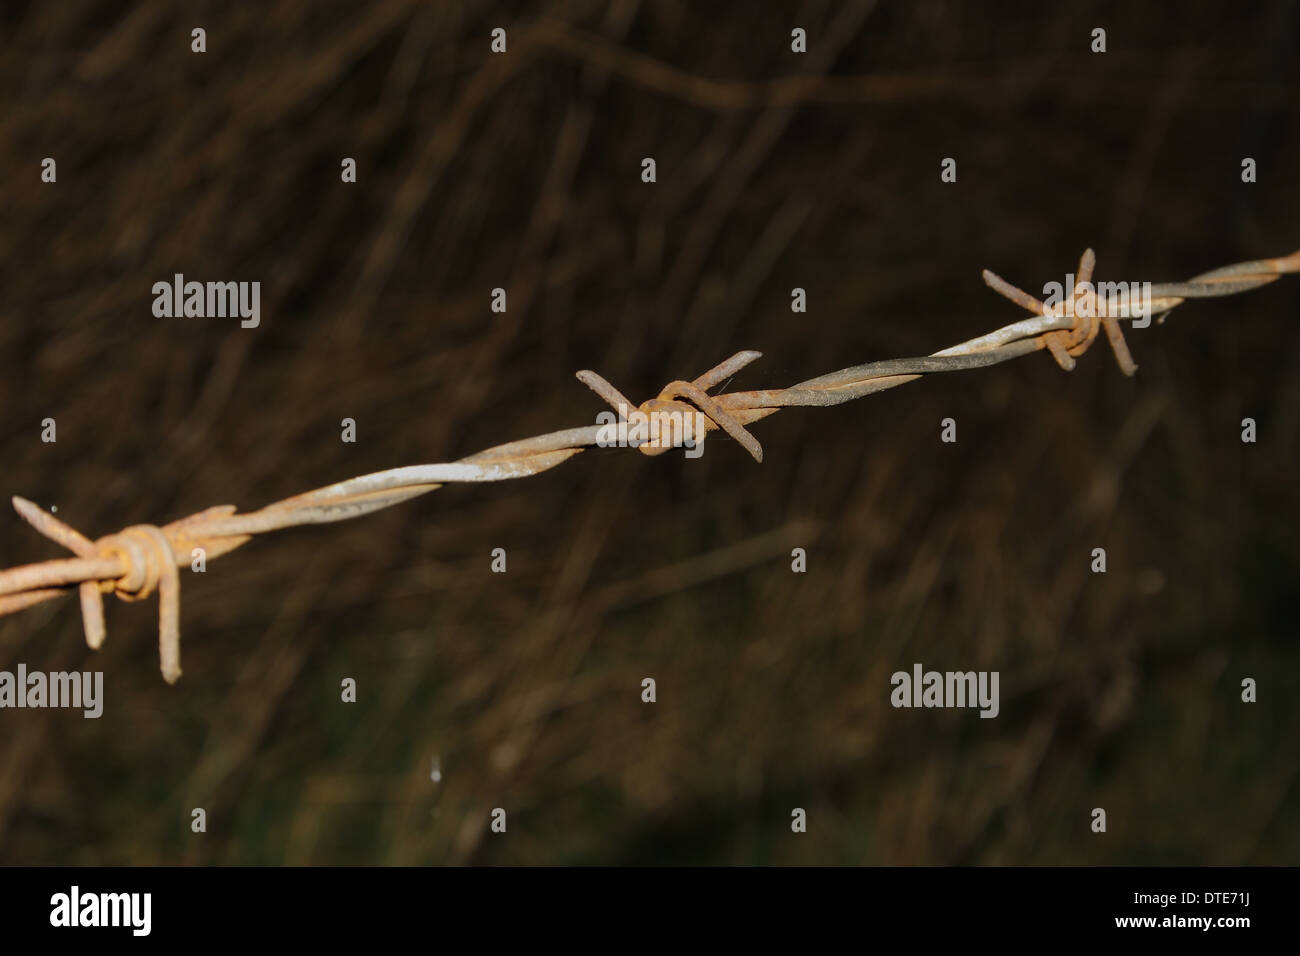 rusty barb wire fence in field near river trent, Nottinghamshire, England, UK - Stock Image